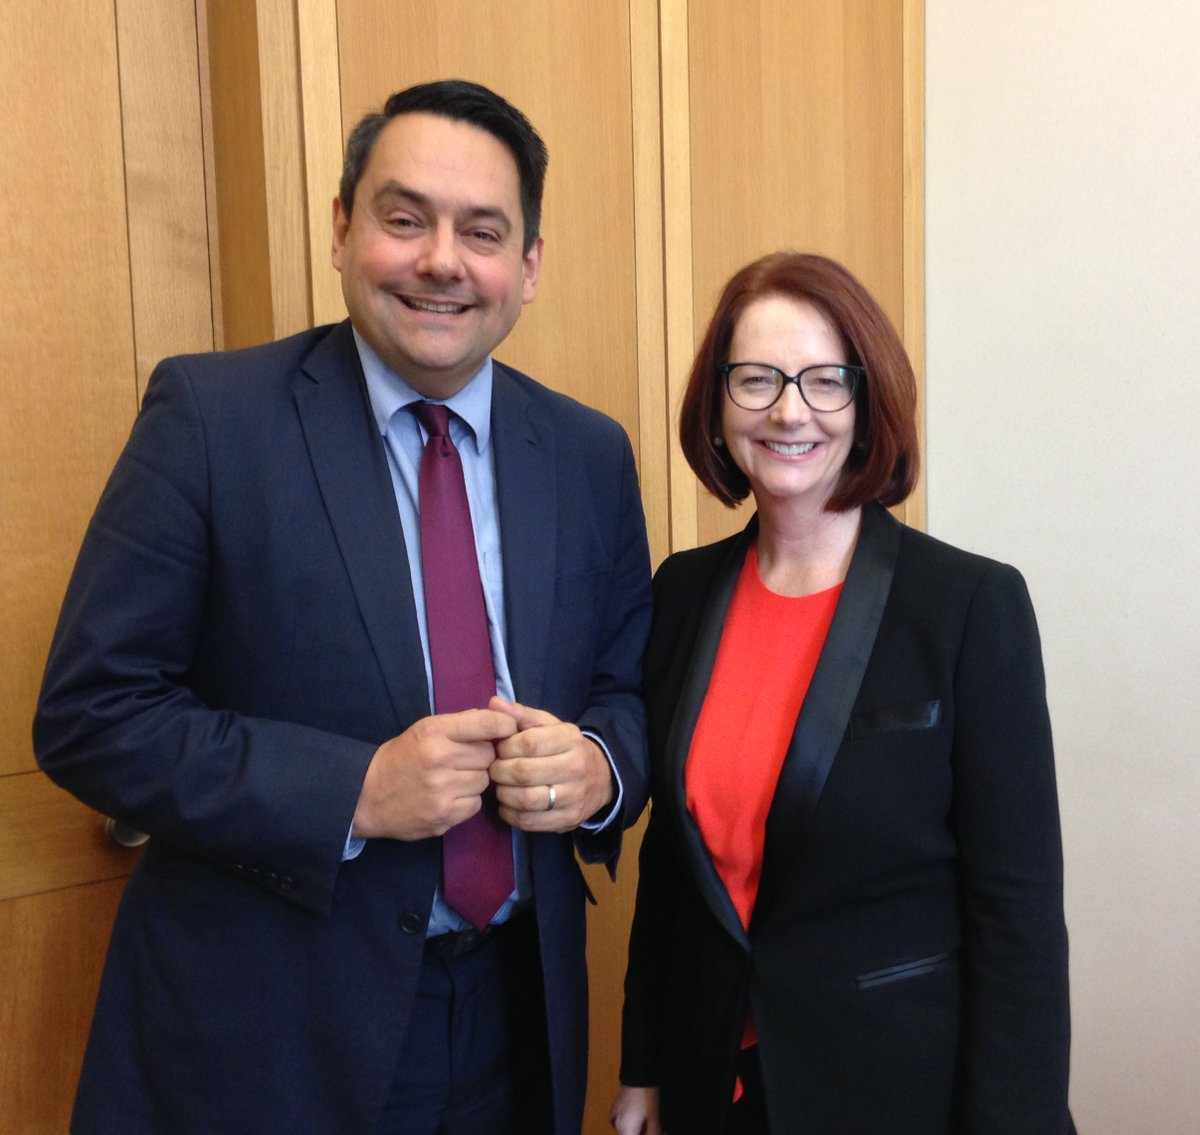 Meeting with former Australian Prime Minister, Julia Gillard to discuss the International Development Committee's    inquiry into the work of DFID   on education